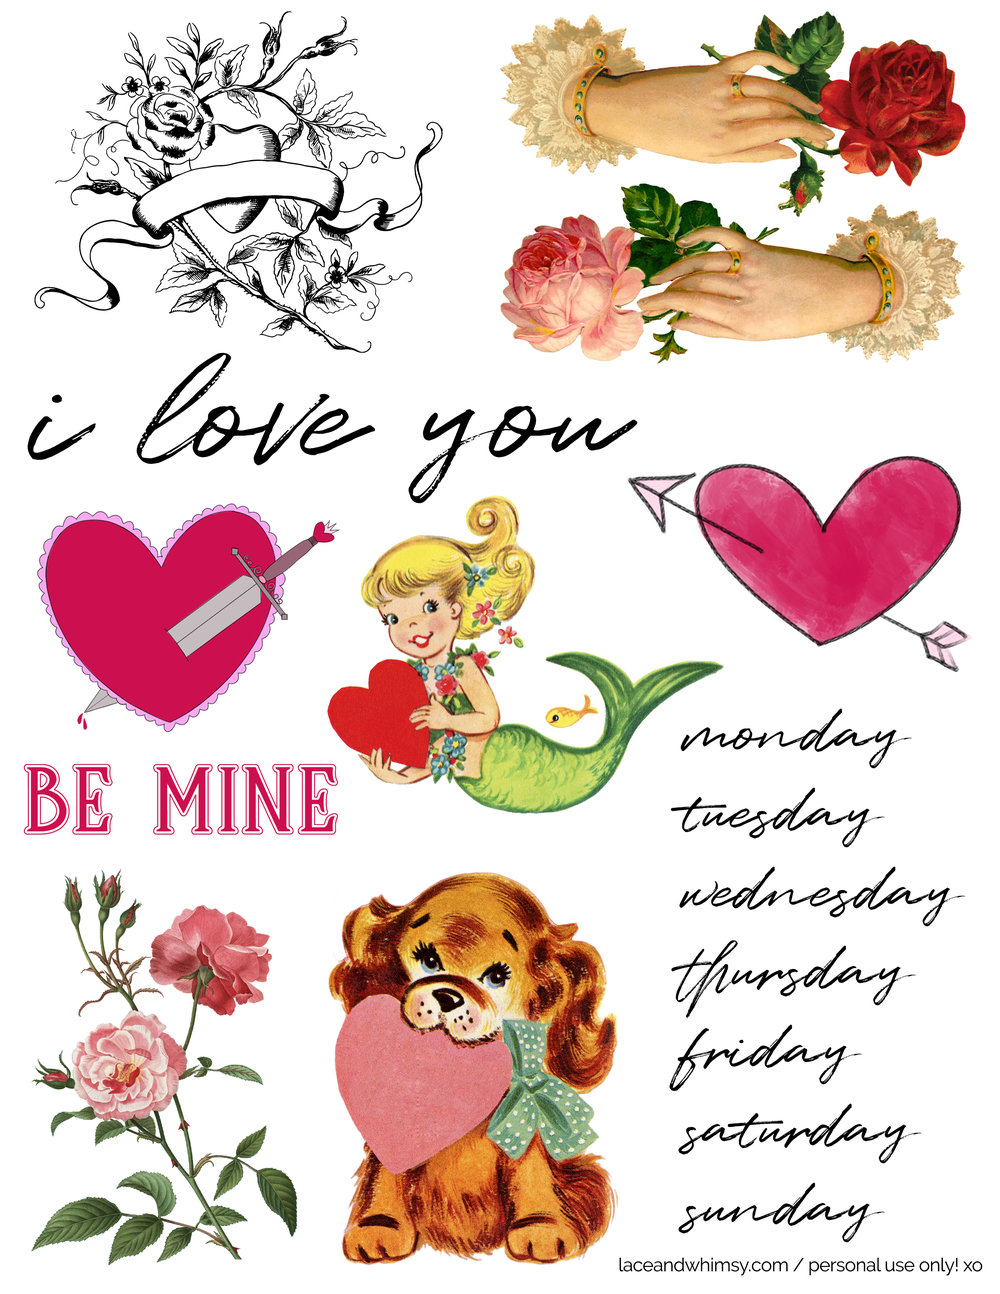 laceandwhimsy-valentine's-printable-collage-sheet.jpg